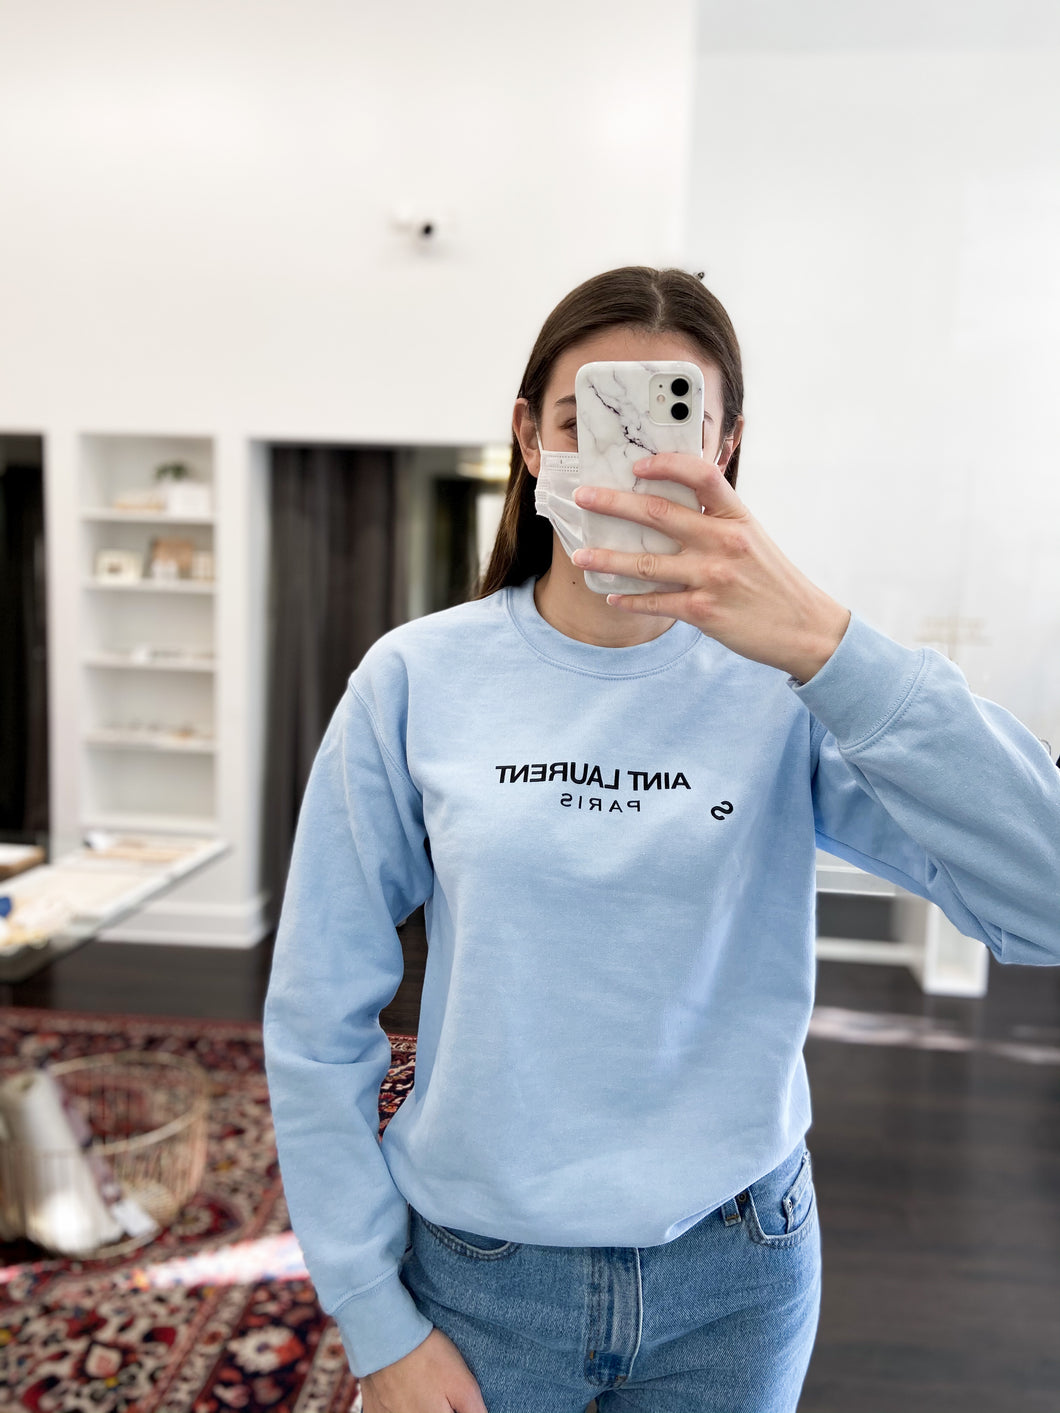 Aint Laurent Sweatshirt in Baby Blue